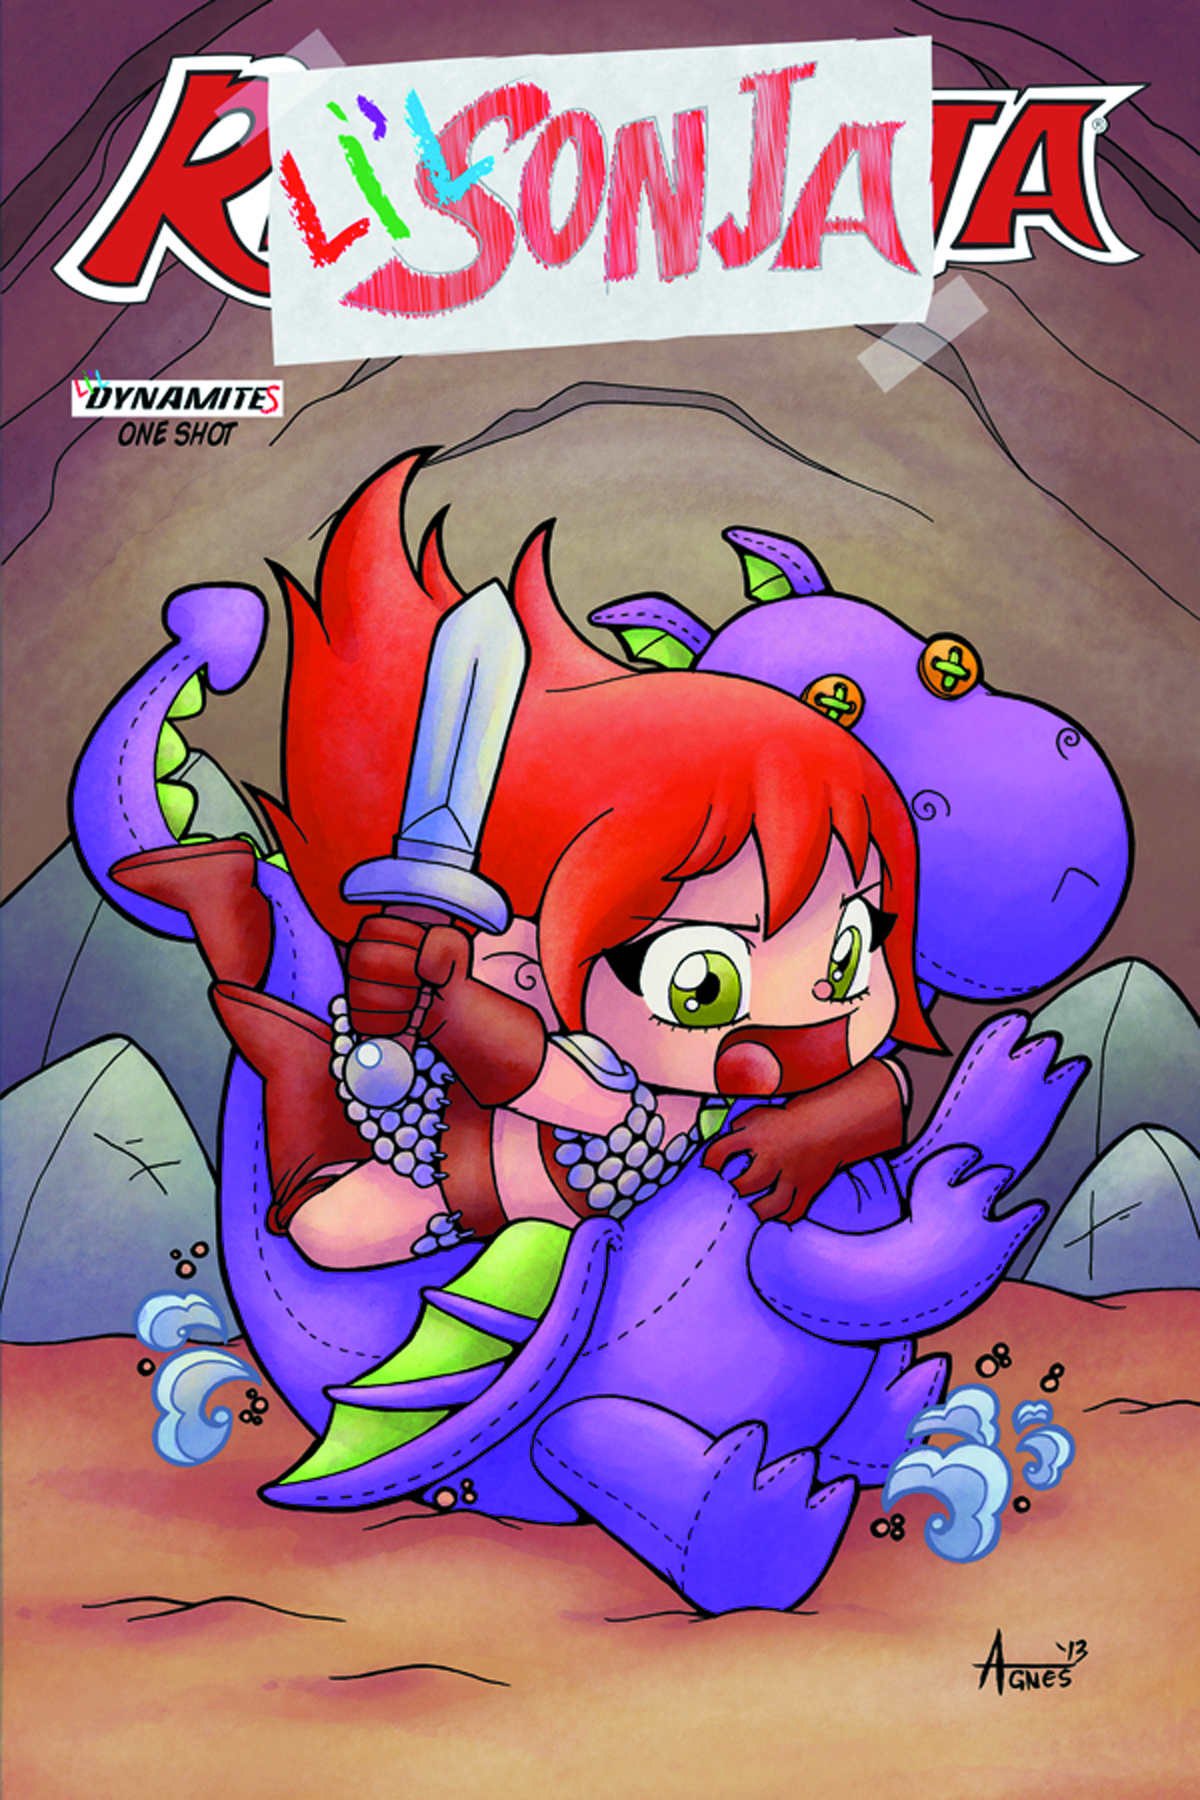 LIL SONJA #1 EXC SUBSCRIPTION CVR